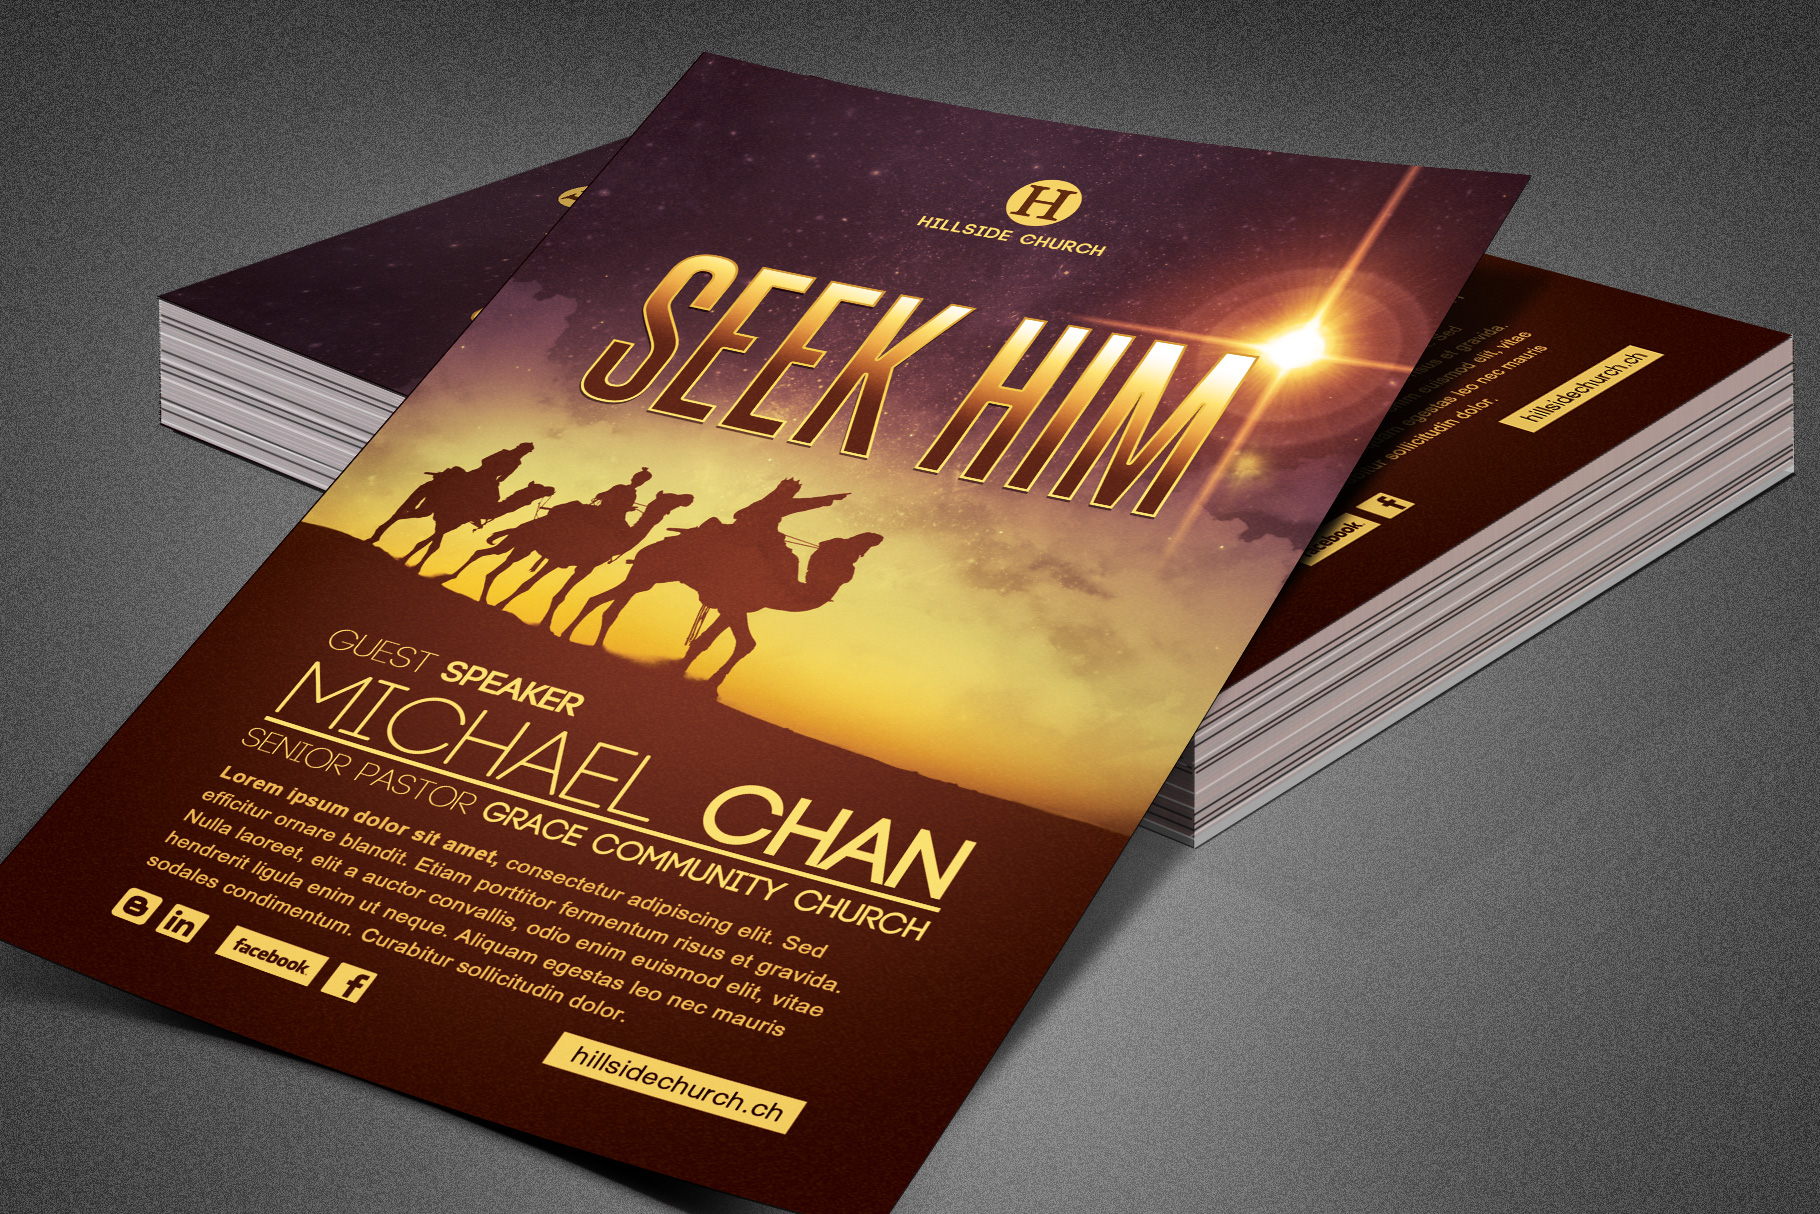 Seek Him Church Flyer Template example image 4